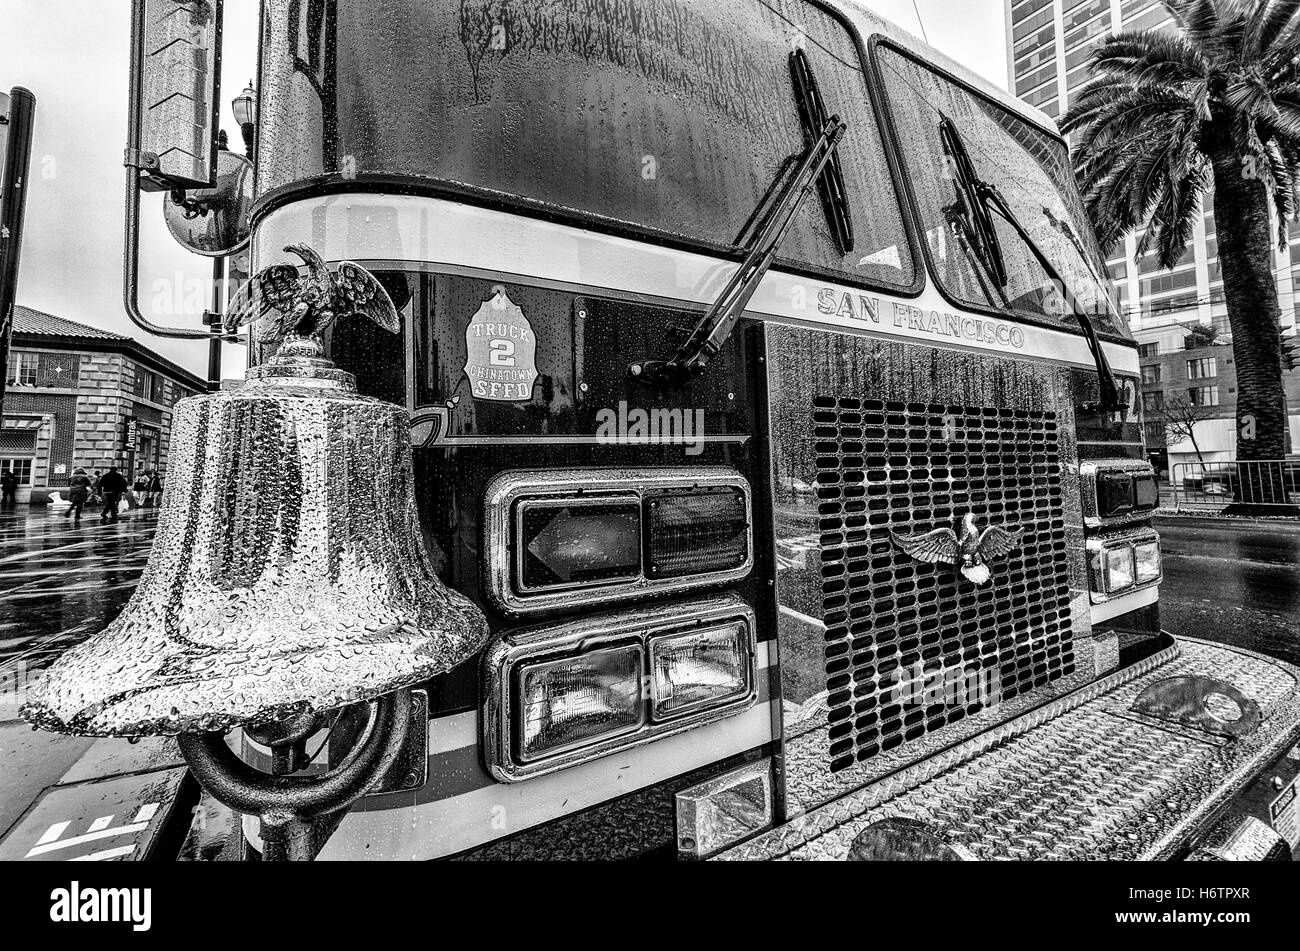 A bell adorns the front of a San Francisco ladder truck sitting in the rain on the Embarcadero. - Stock Image